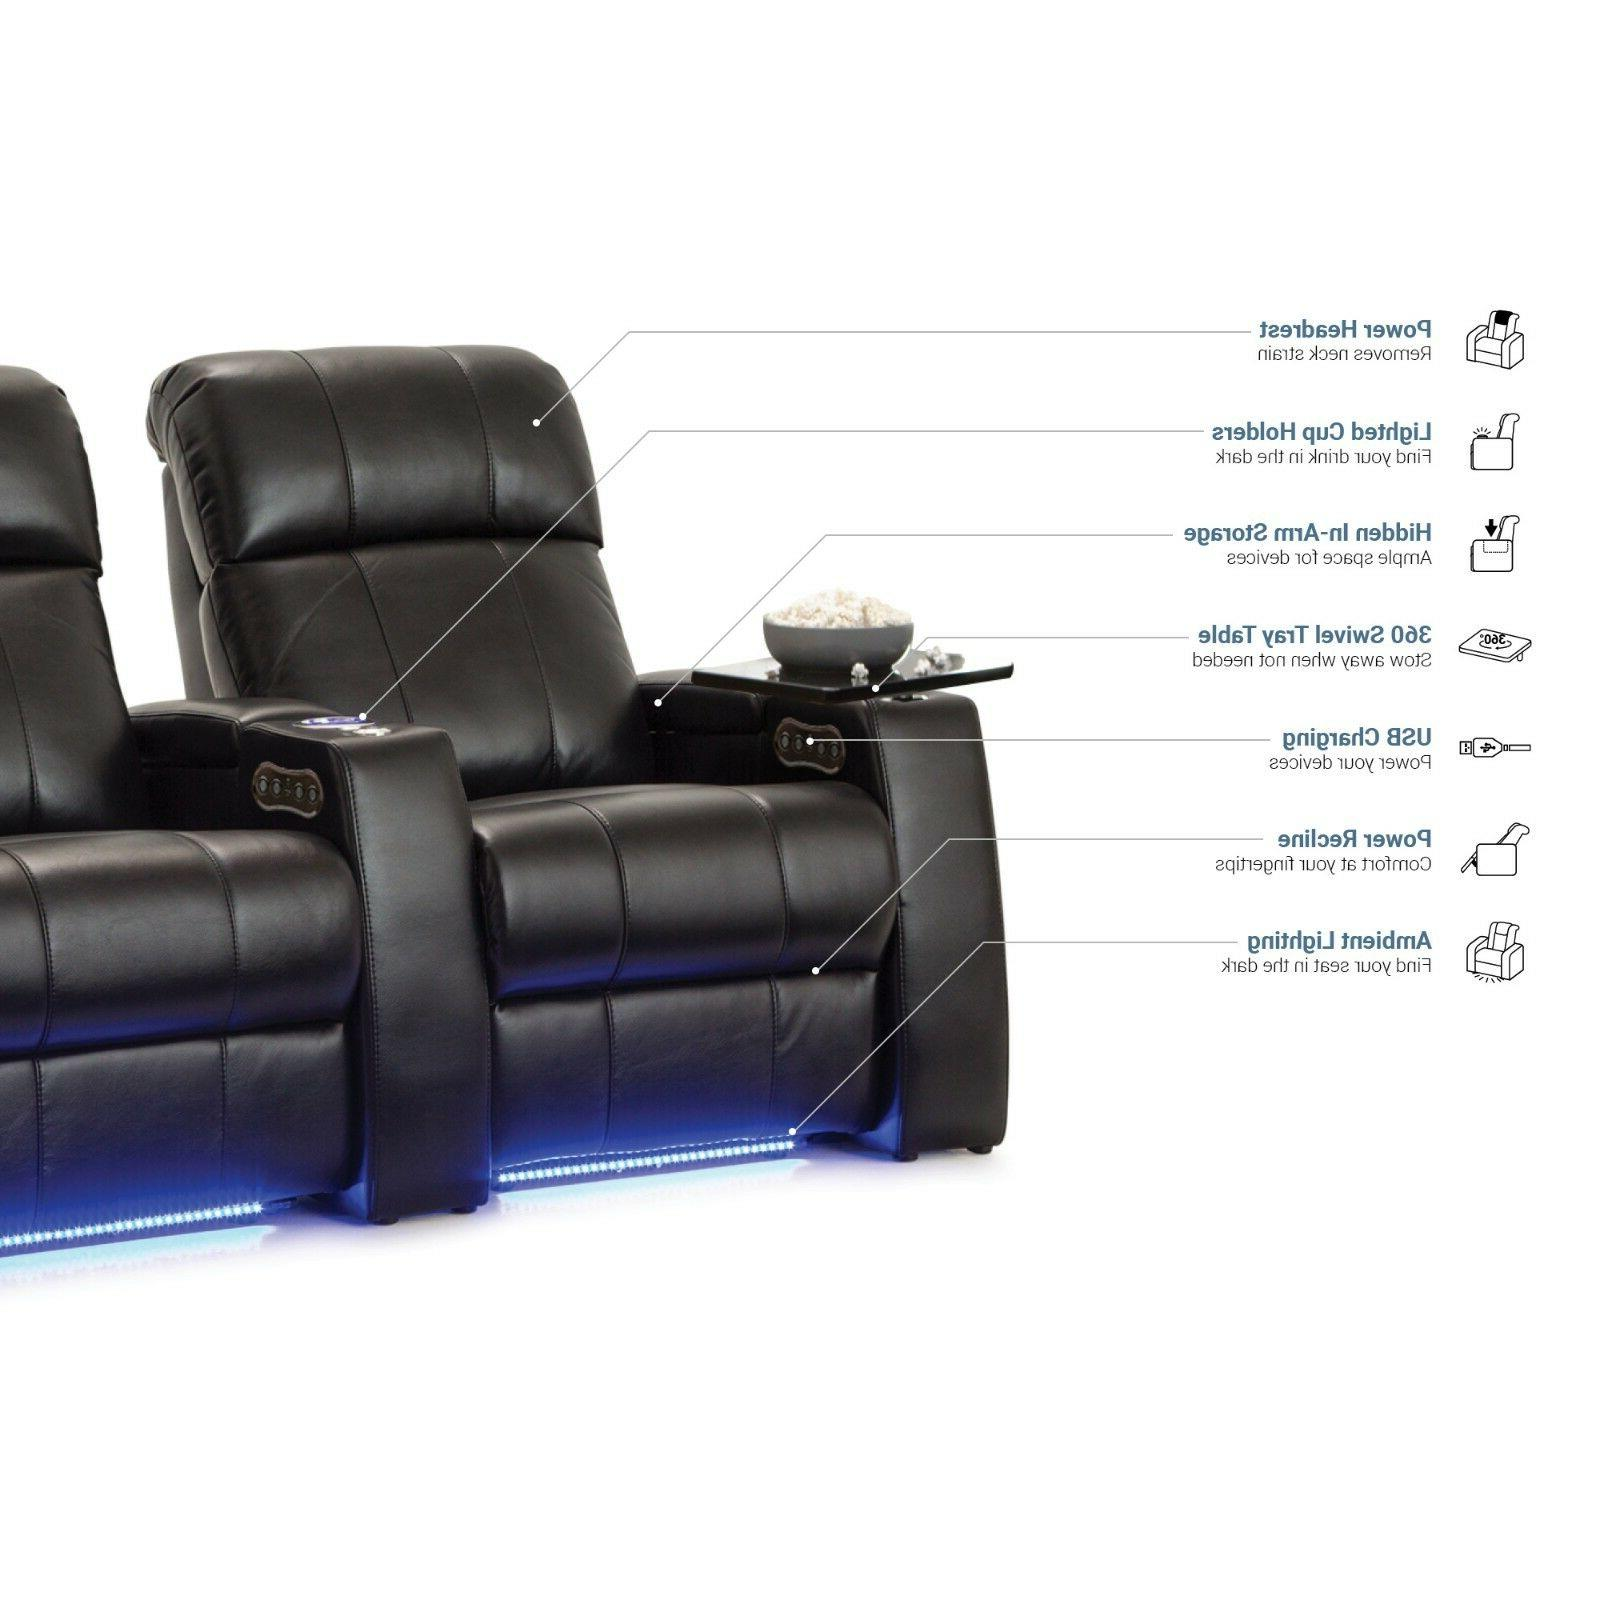 Seatcraft Home Seating Seat Chair Couch